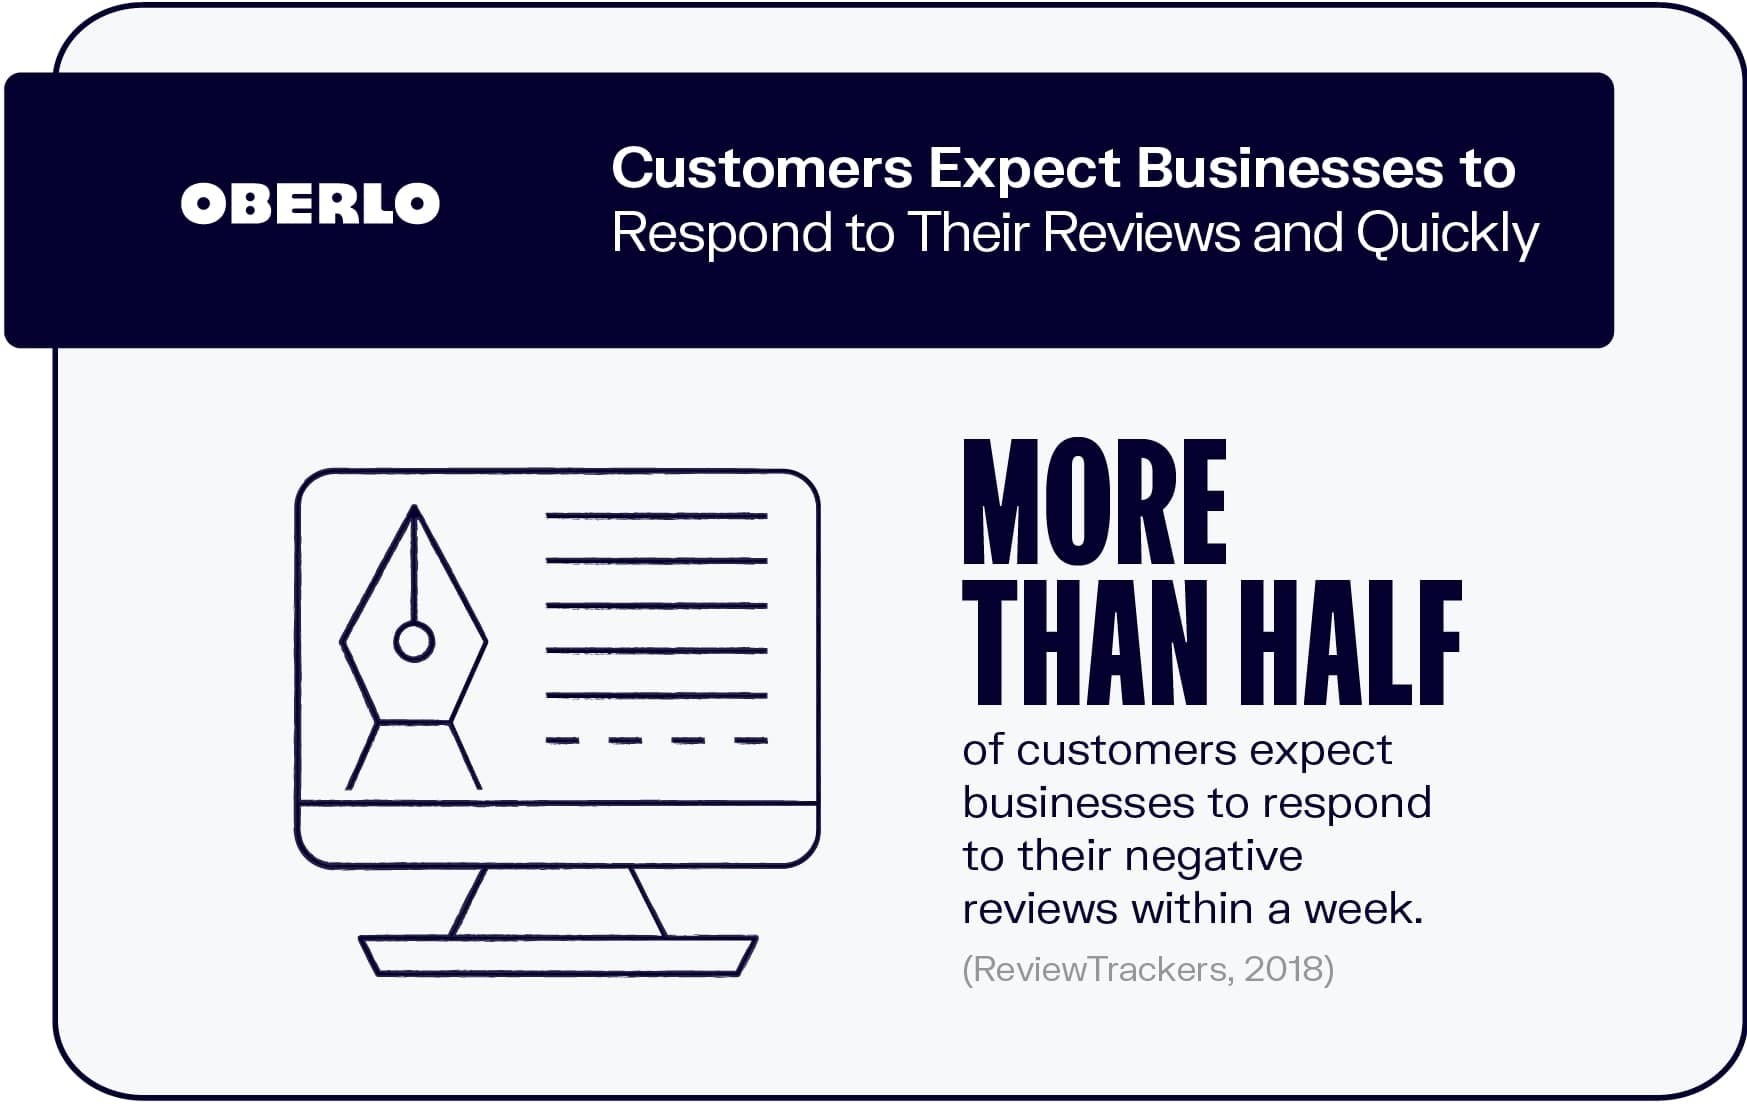 Customers Expect Businesses to Respond to Their Reviews and Quickly